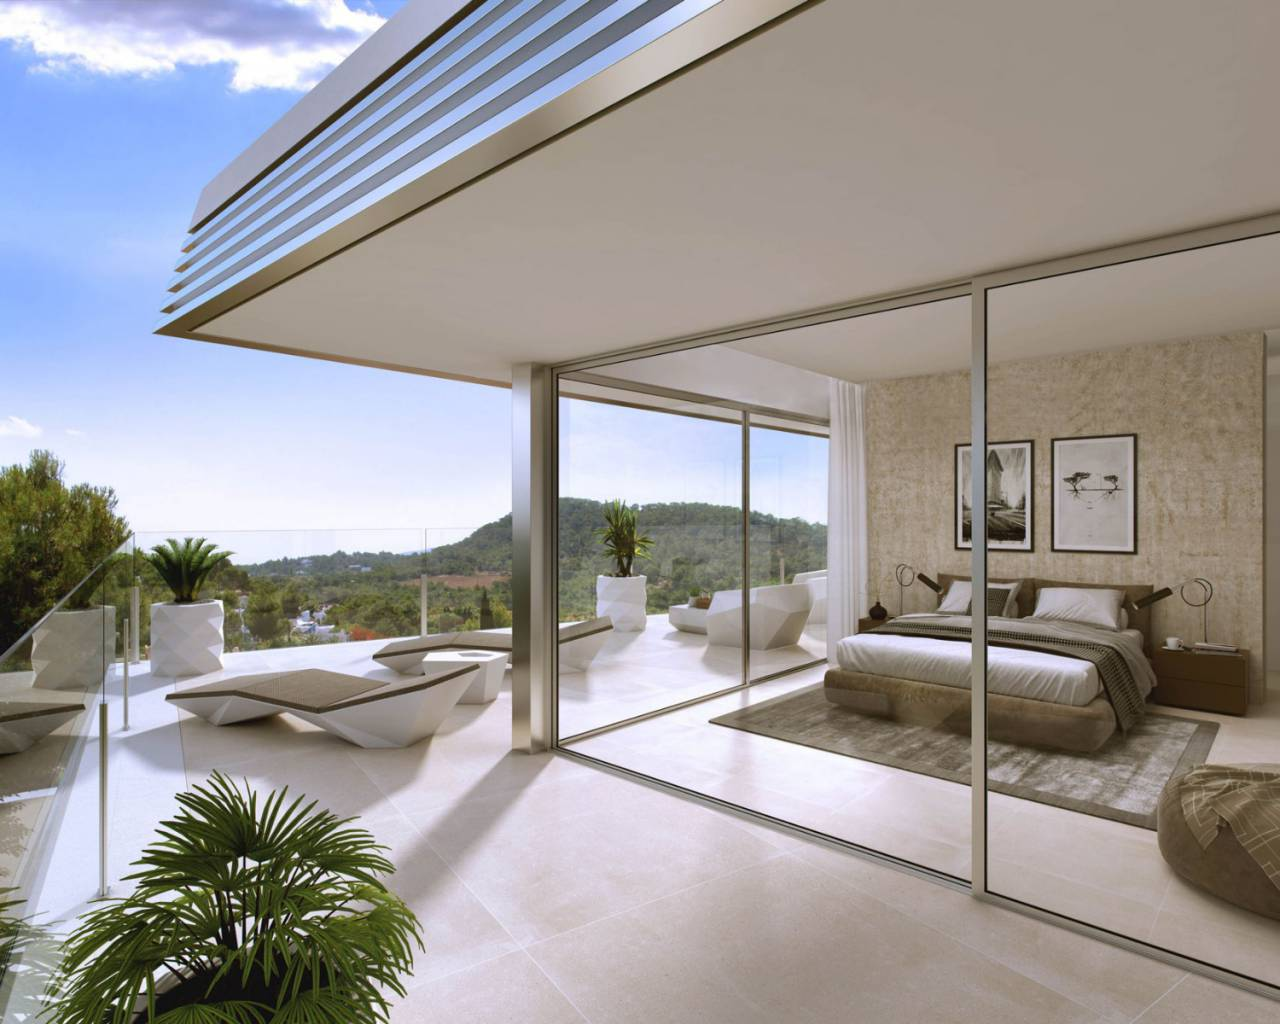 New Build - Huis - Mijas Costa